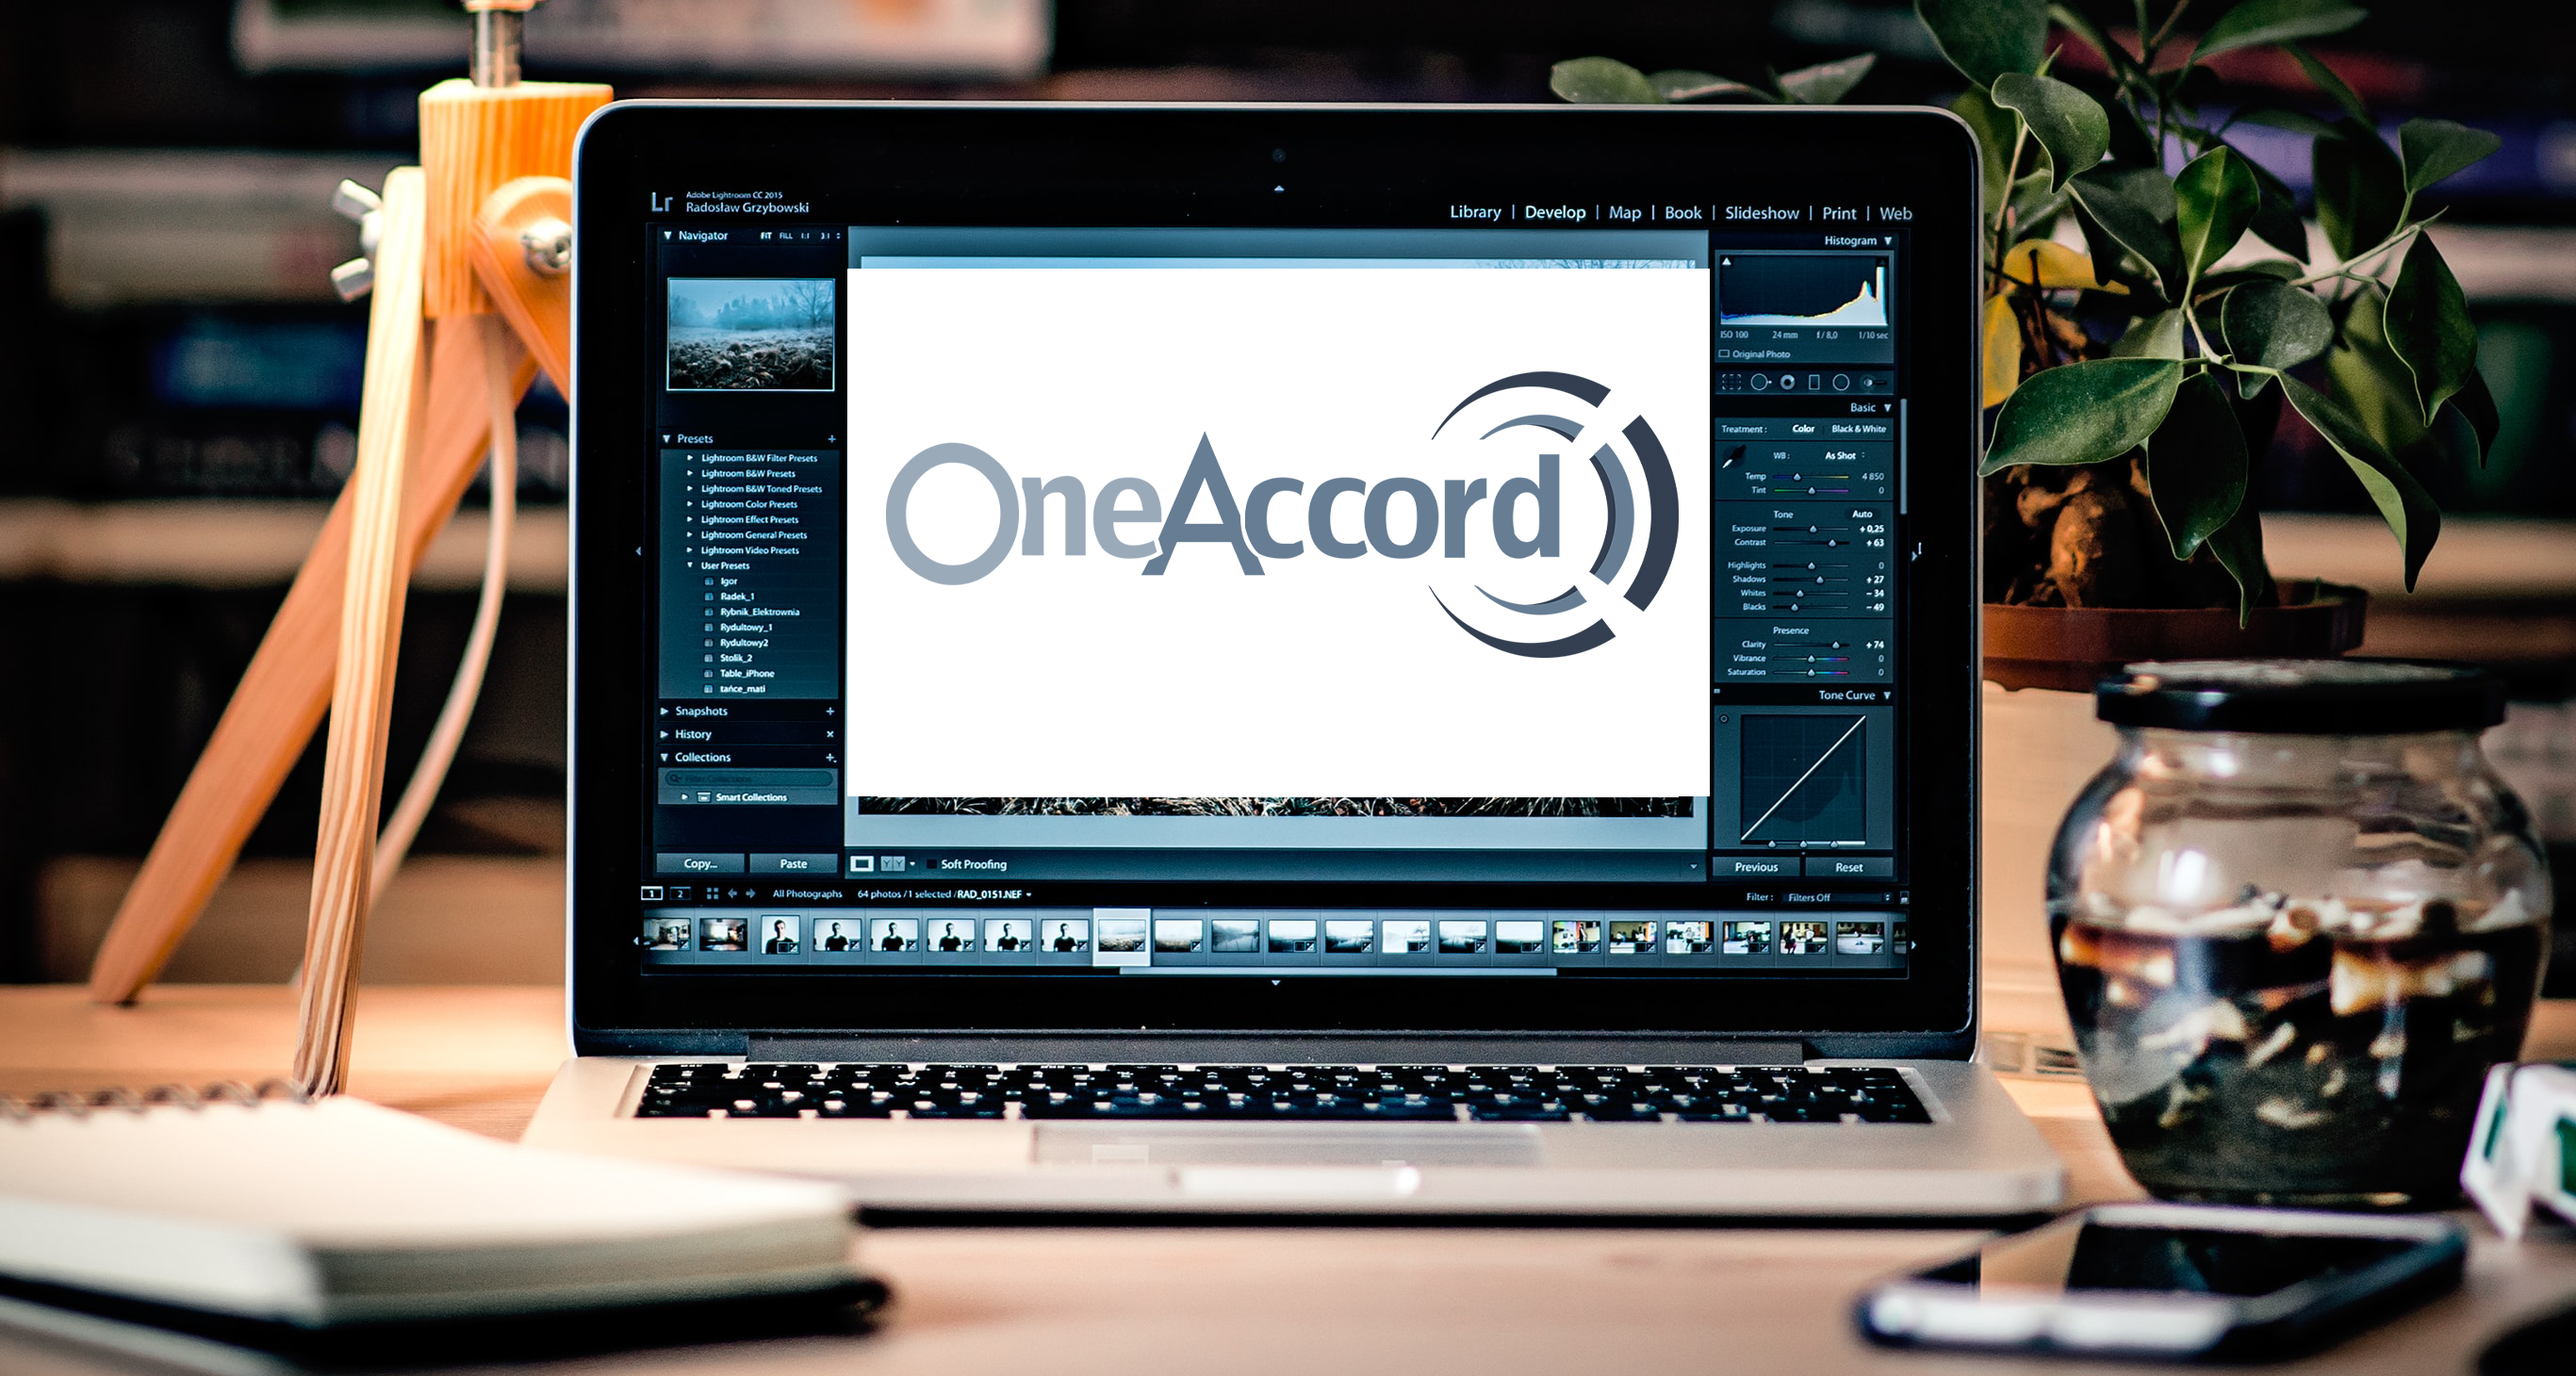 OneAccord website launch